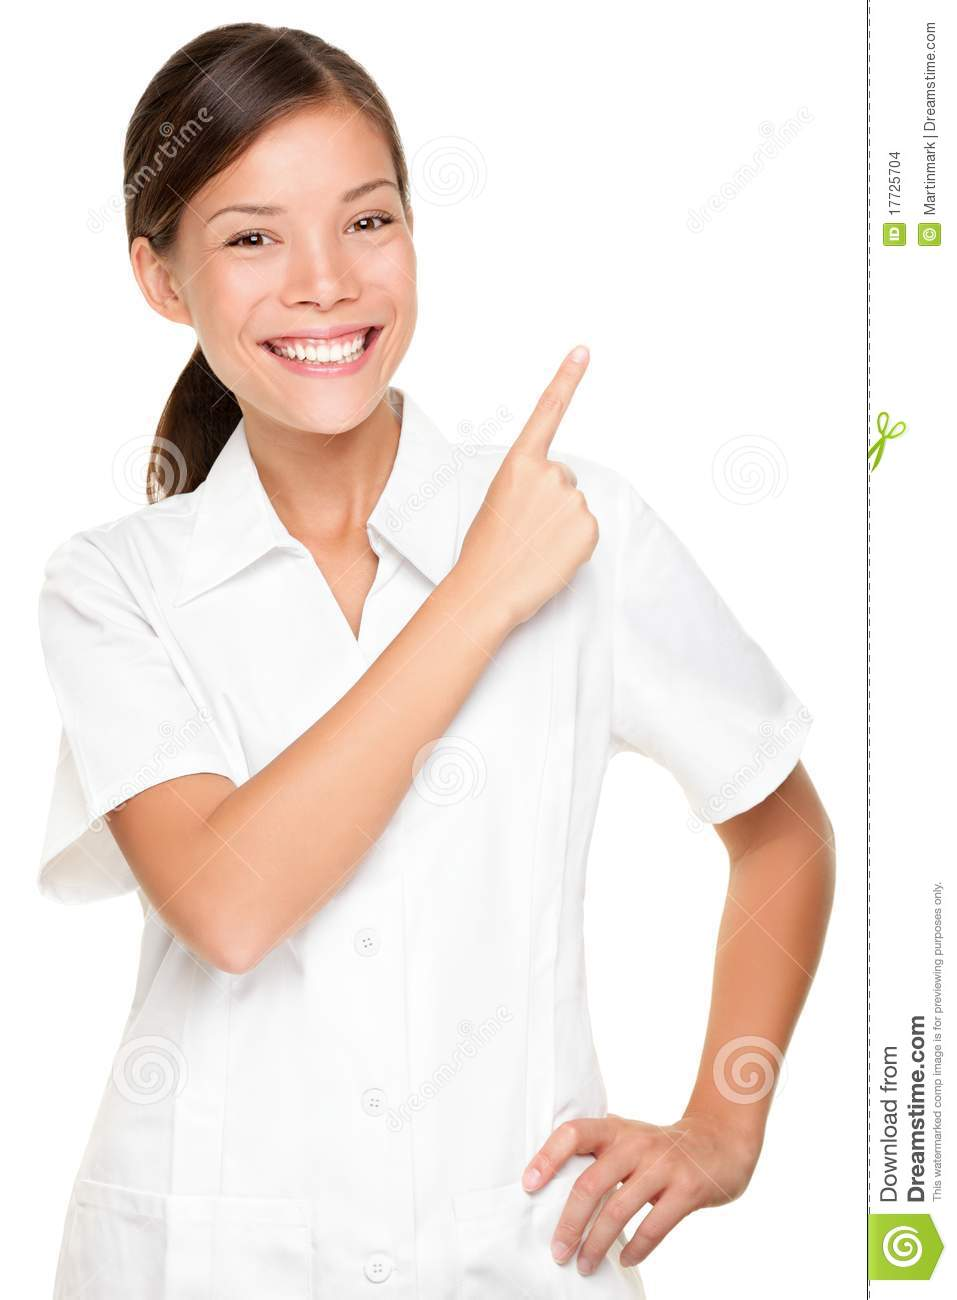 Spa woman employee pointing at white backgroud stock for Spa employee uniform